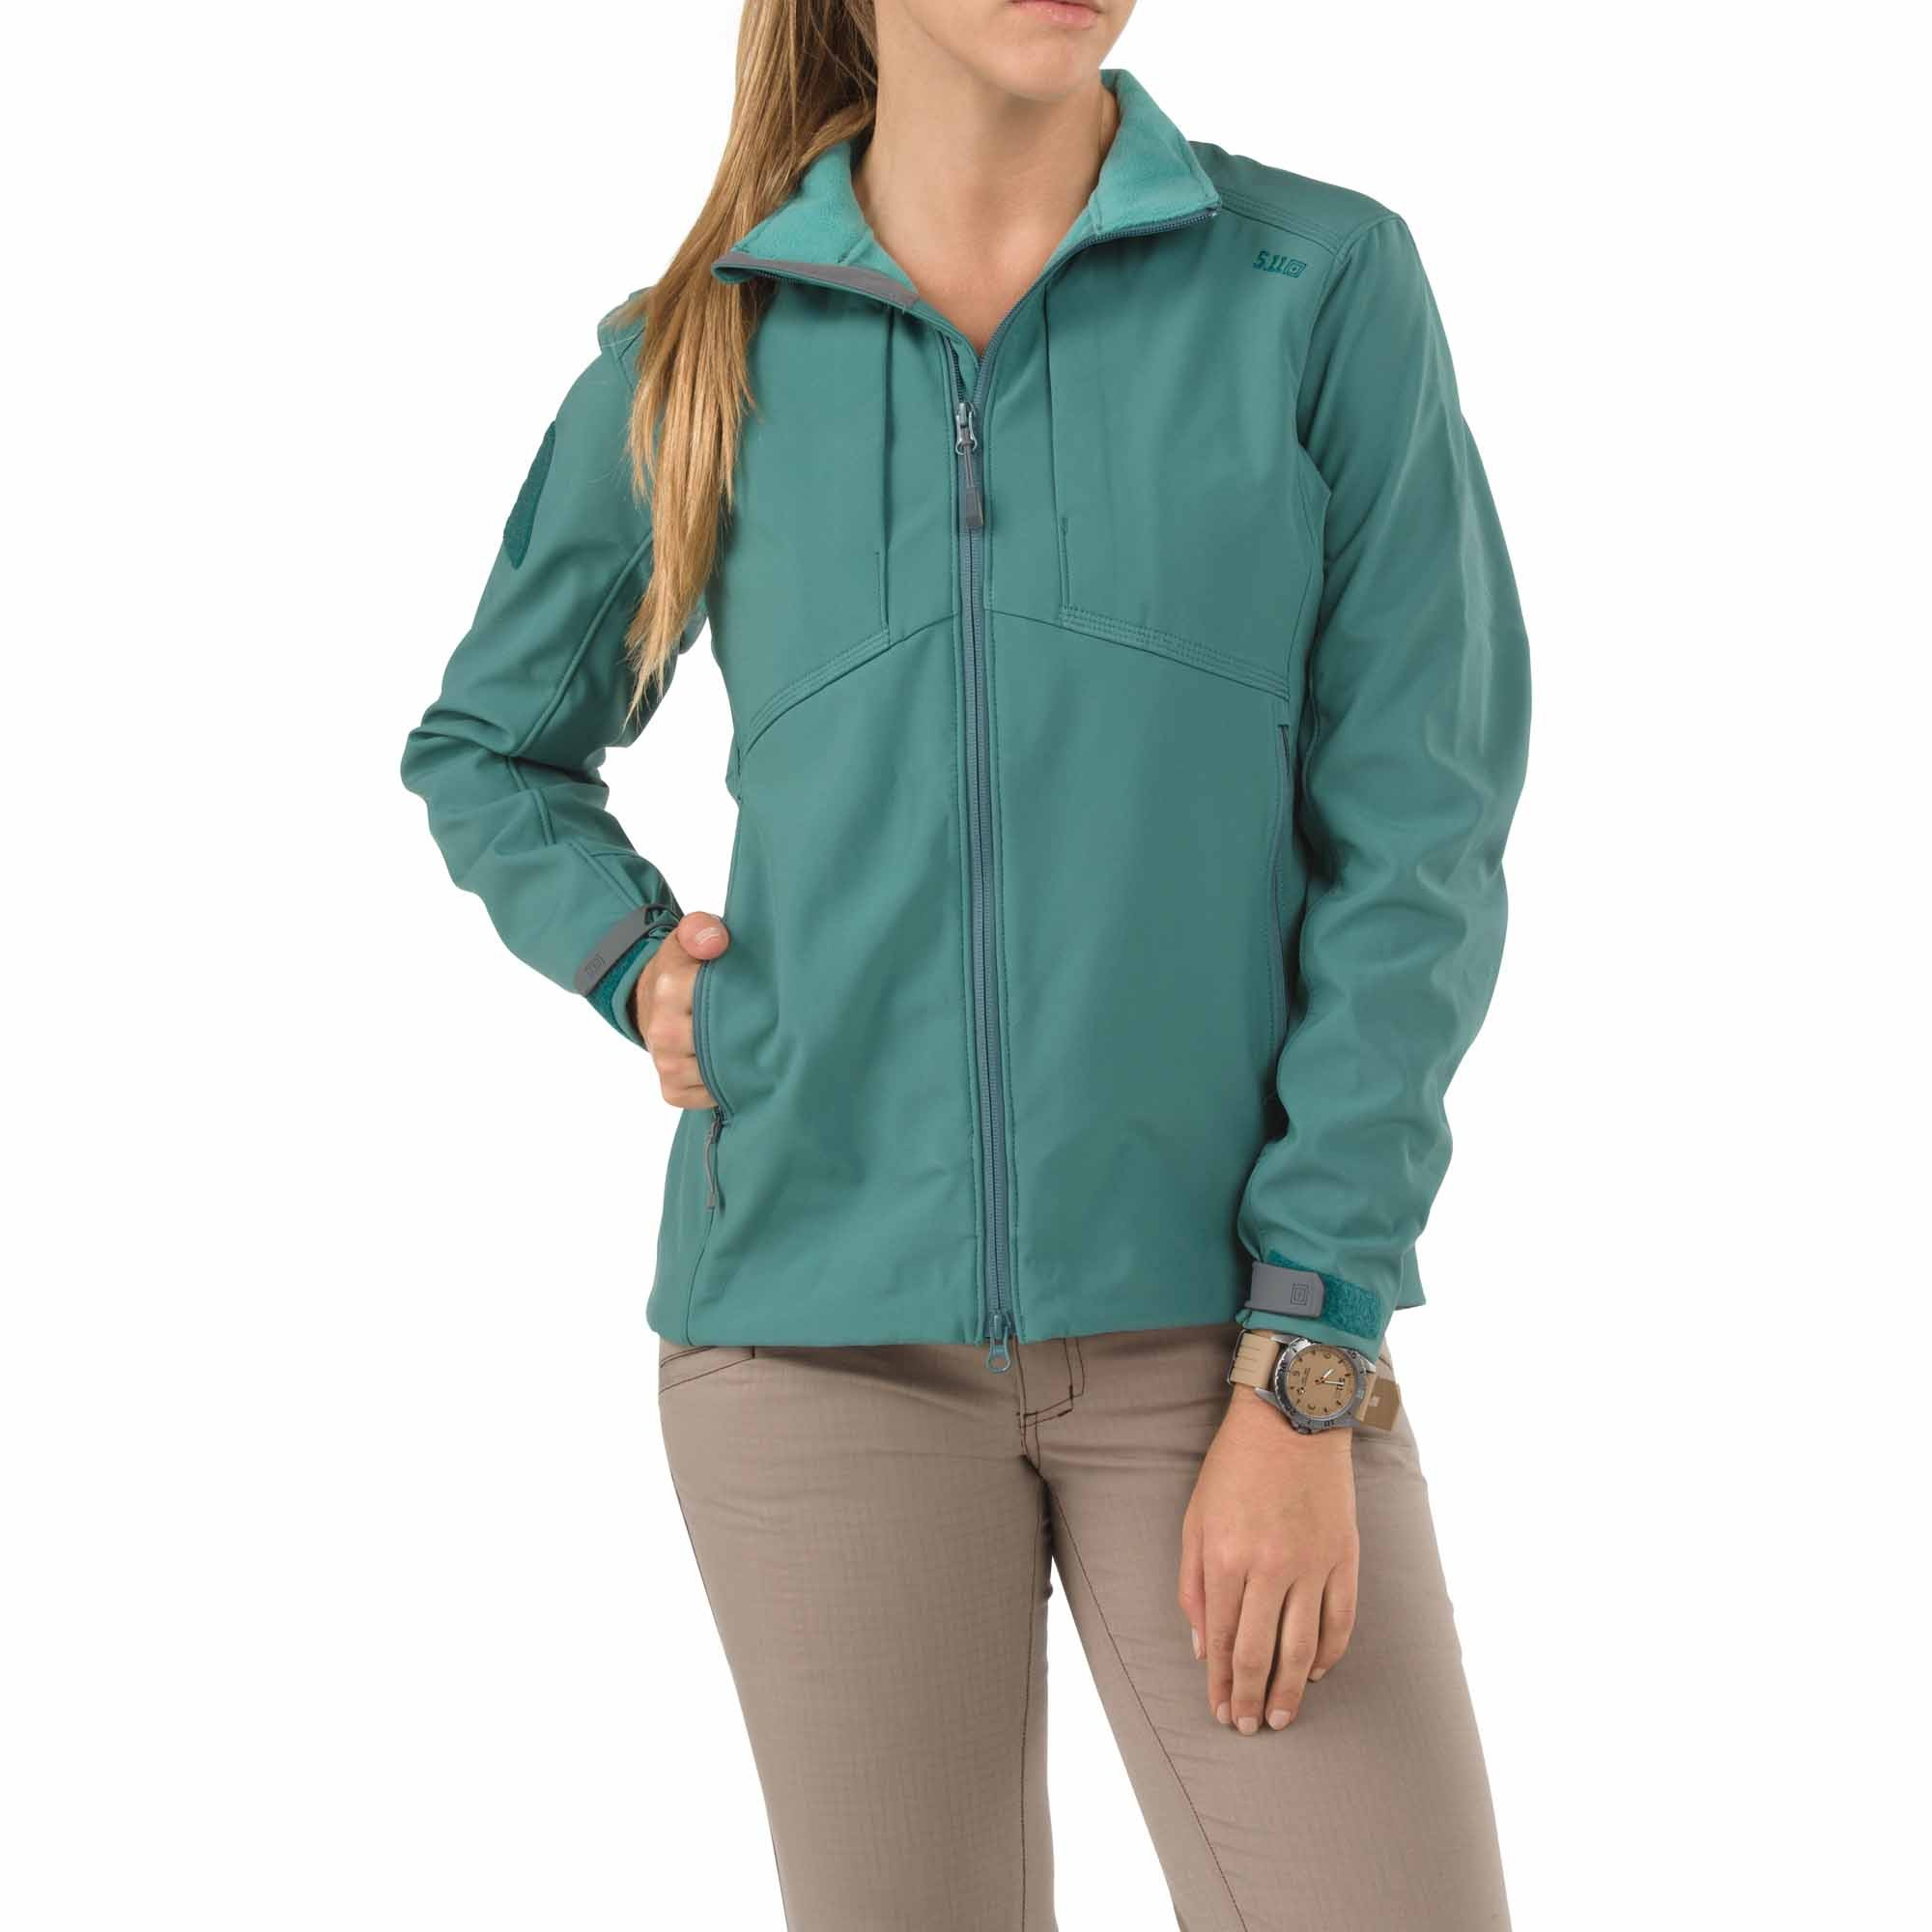 5.11 Womens Sierra Soft Shell Jacket 38068